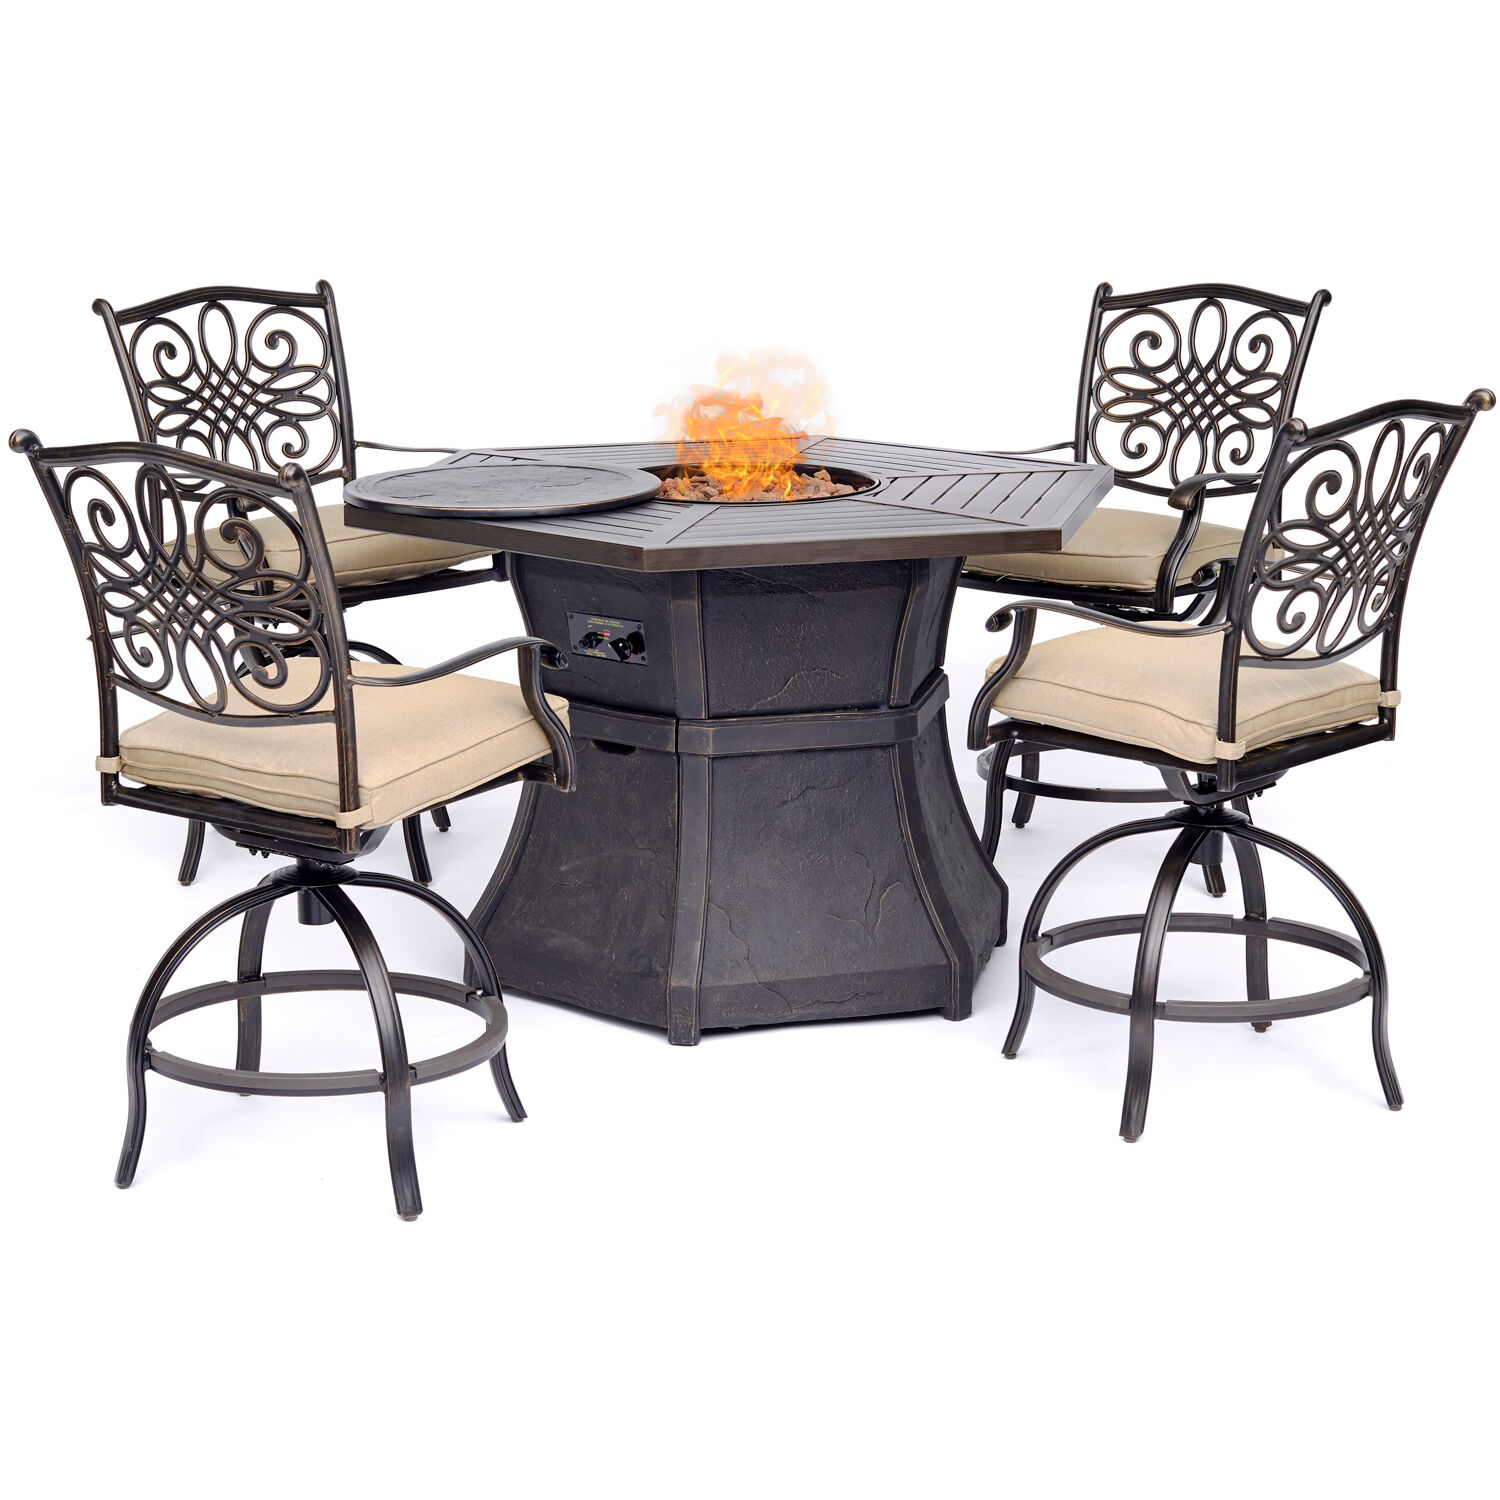 Hanover Traditions 5-Piece High-Dining Set in Tan with 4 Swivel Chairs and a 40,000 BTU Cast-top Fire Pit Table